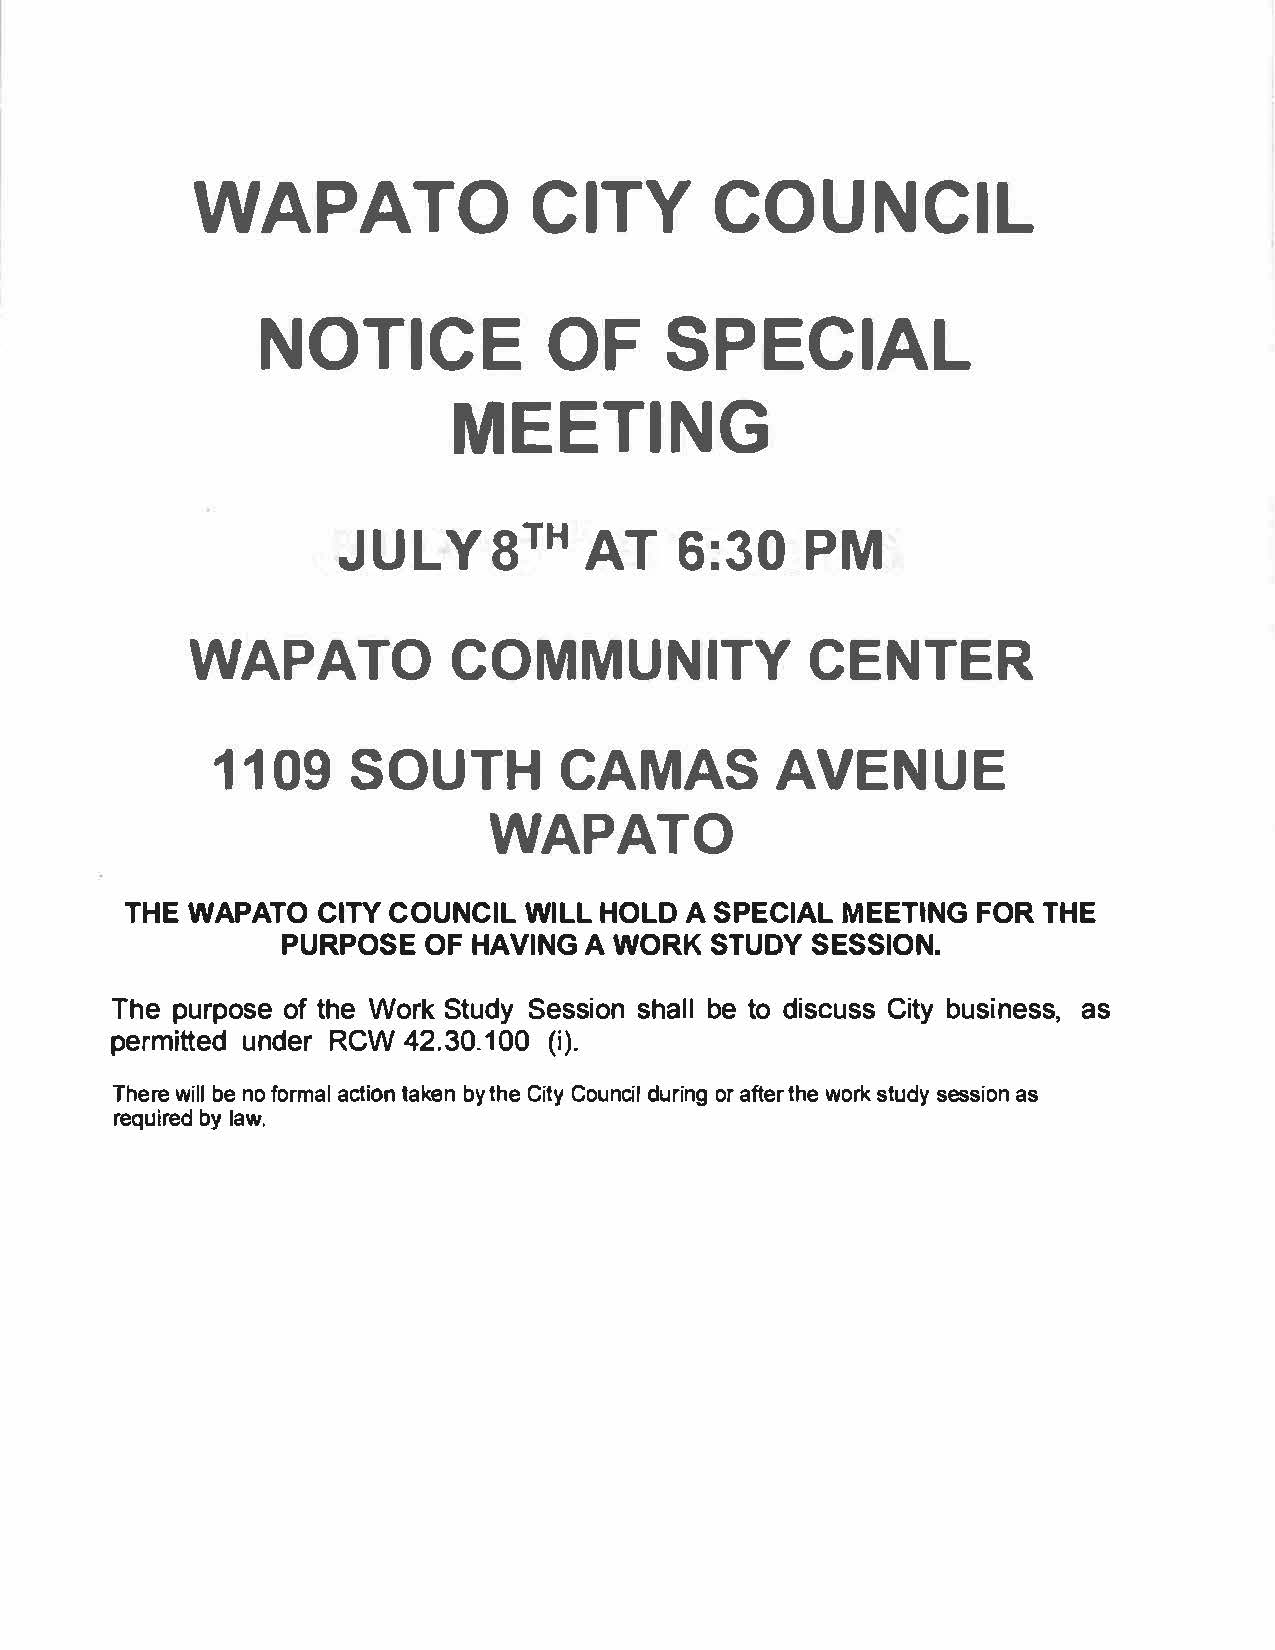 Notice of Special Meeting July 8th @ 6:30 pm